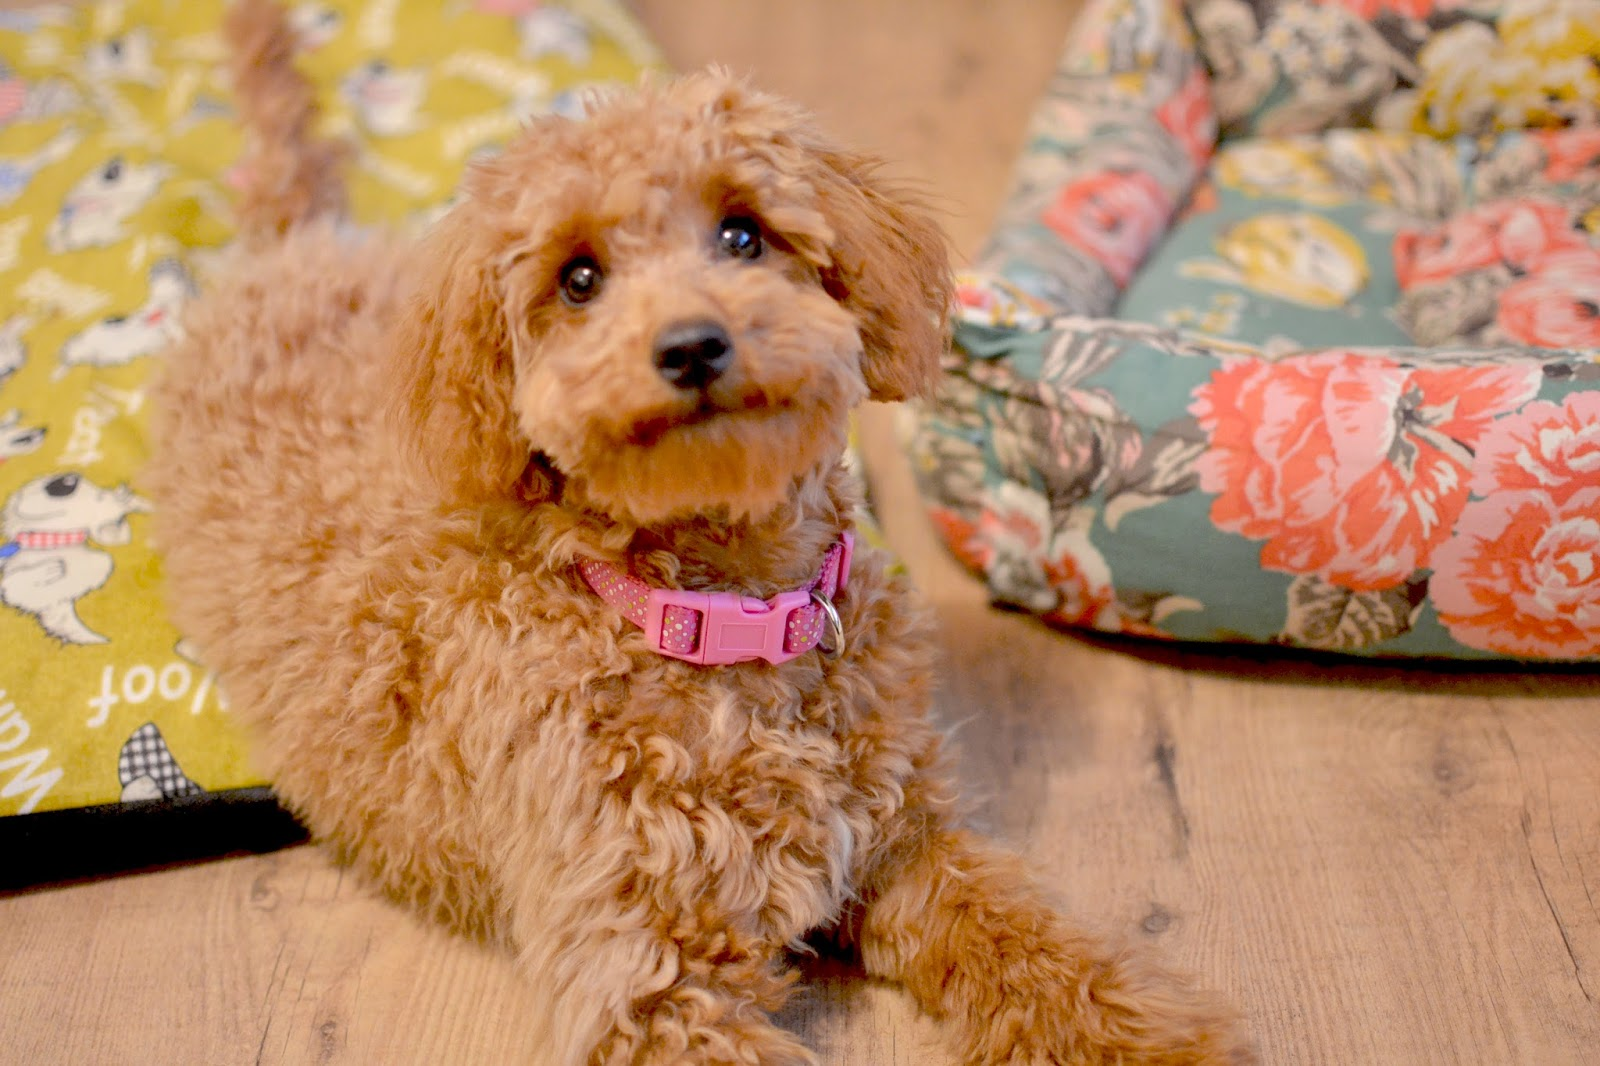 Relieving Pin Miniature Haircut Blog Toy Poodle Puppy Cut S Standard Poodle Puppy Cut Grooming bark post Poodle Puppy Cut